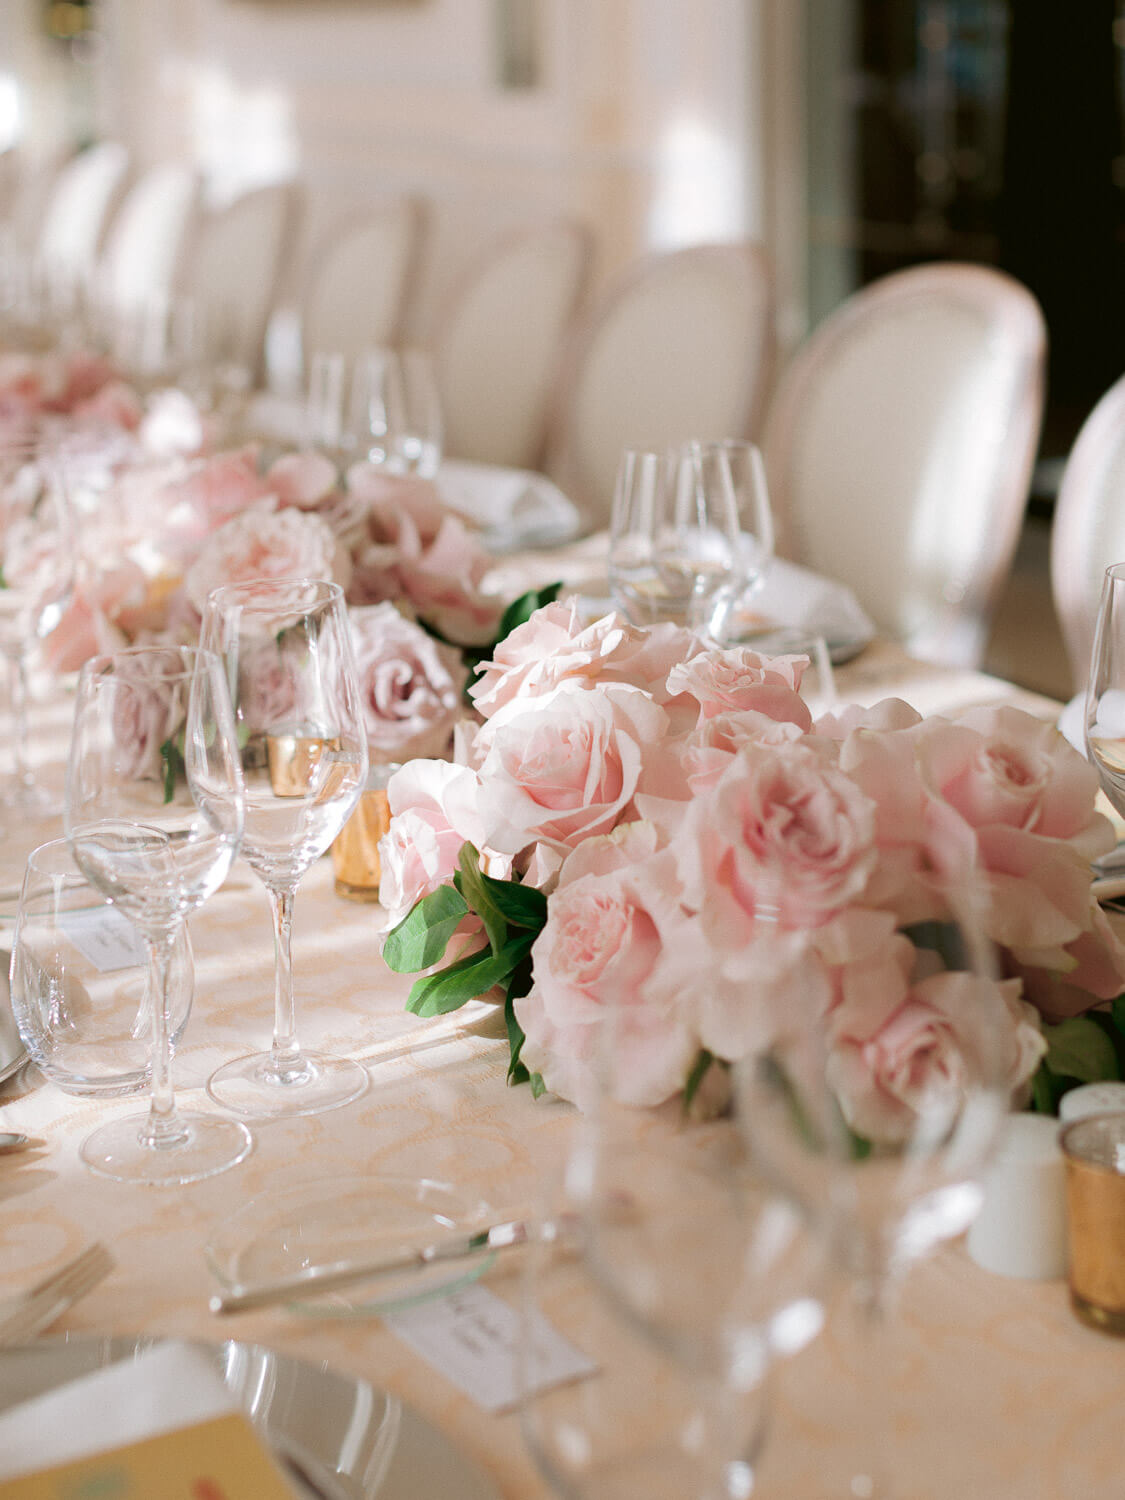 wedding reception table close up with roses centrepieces by Portugal Wedding Photographer